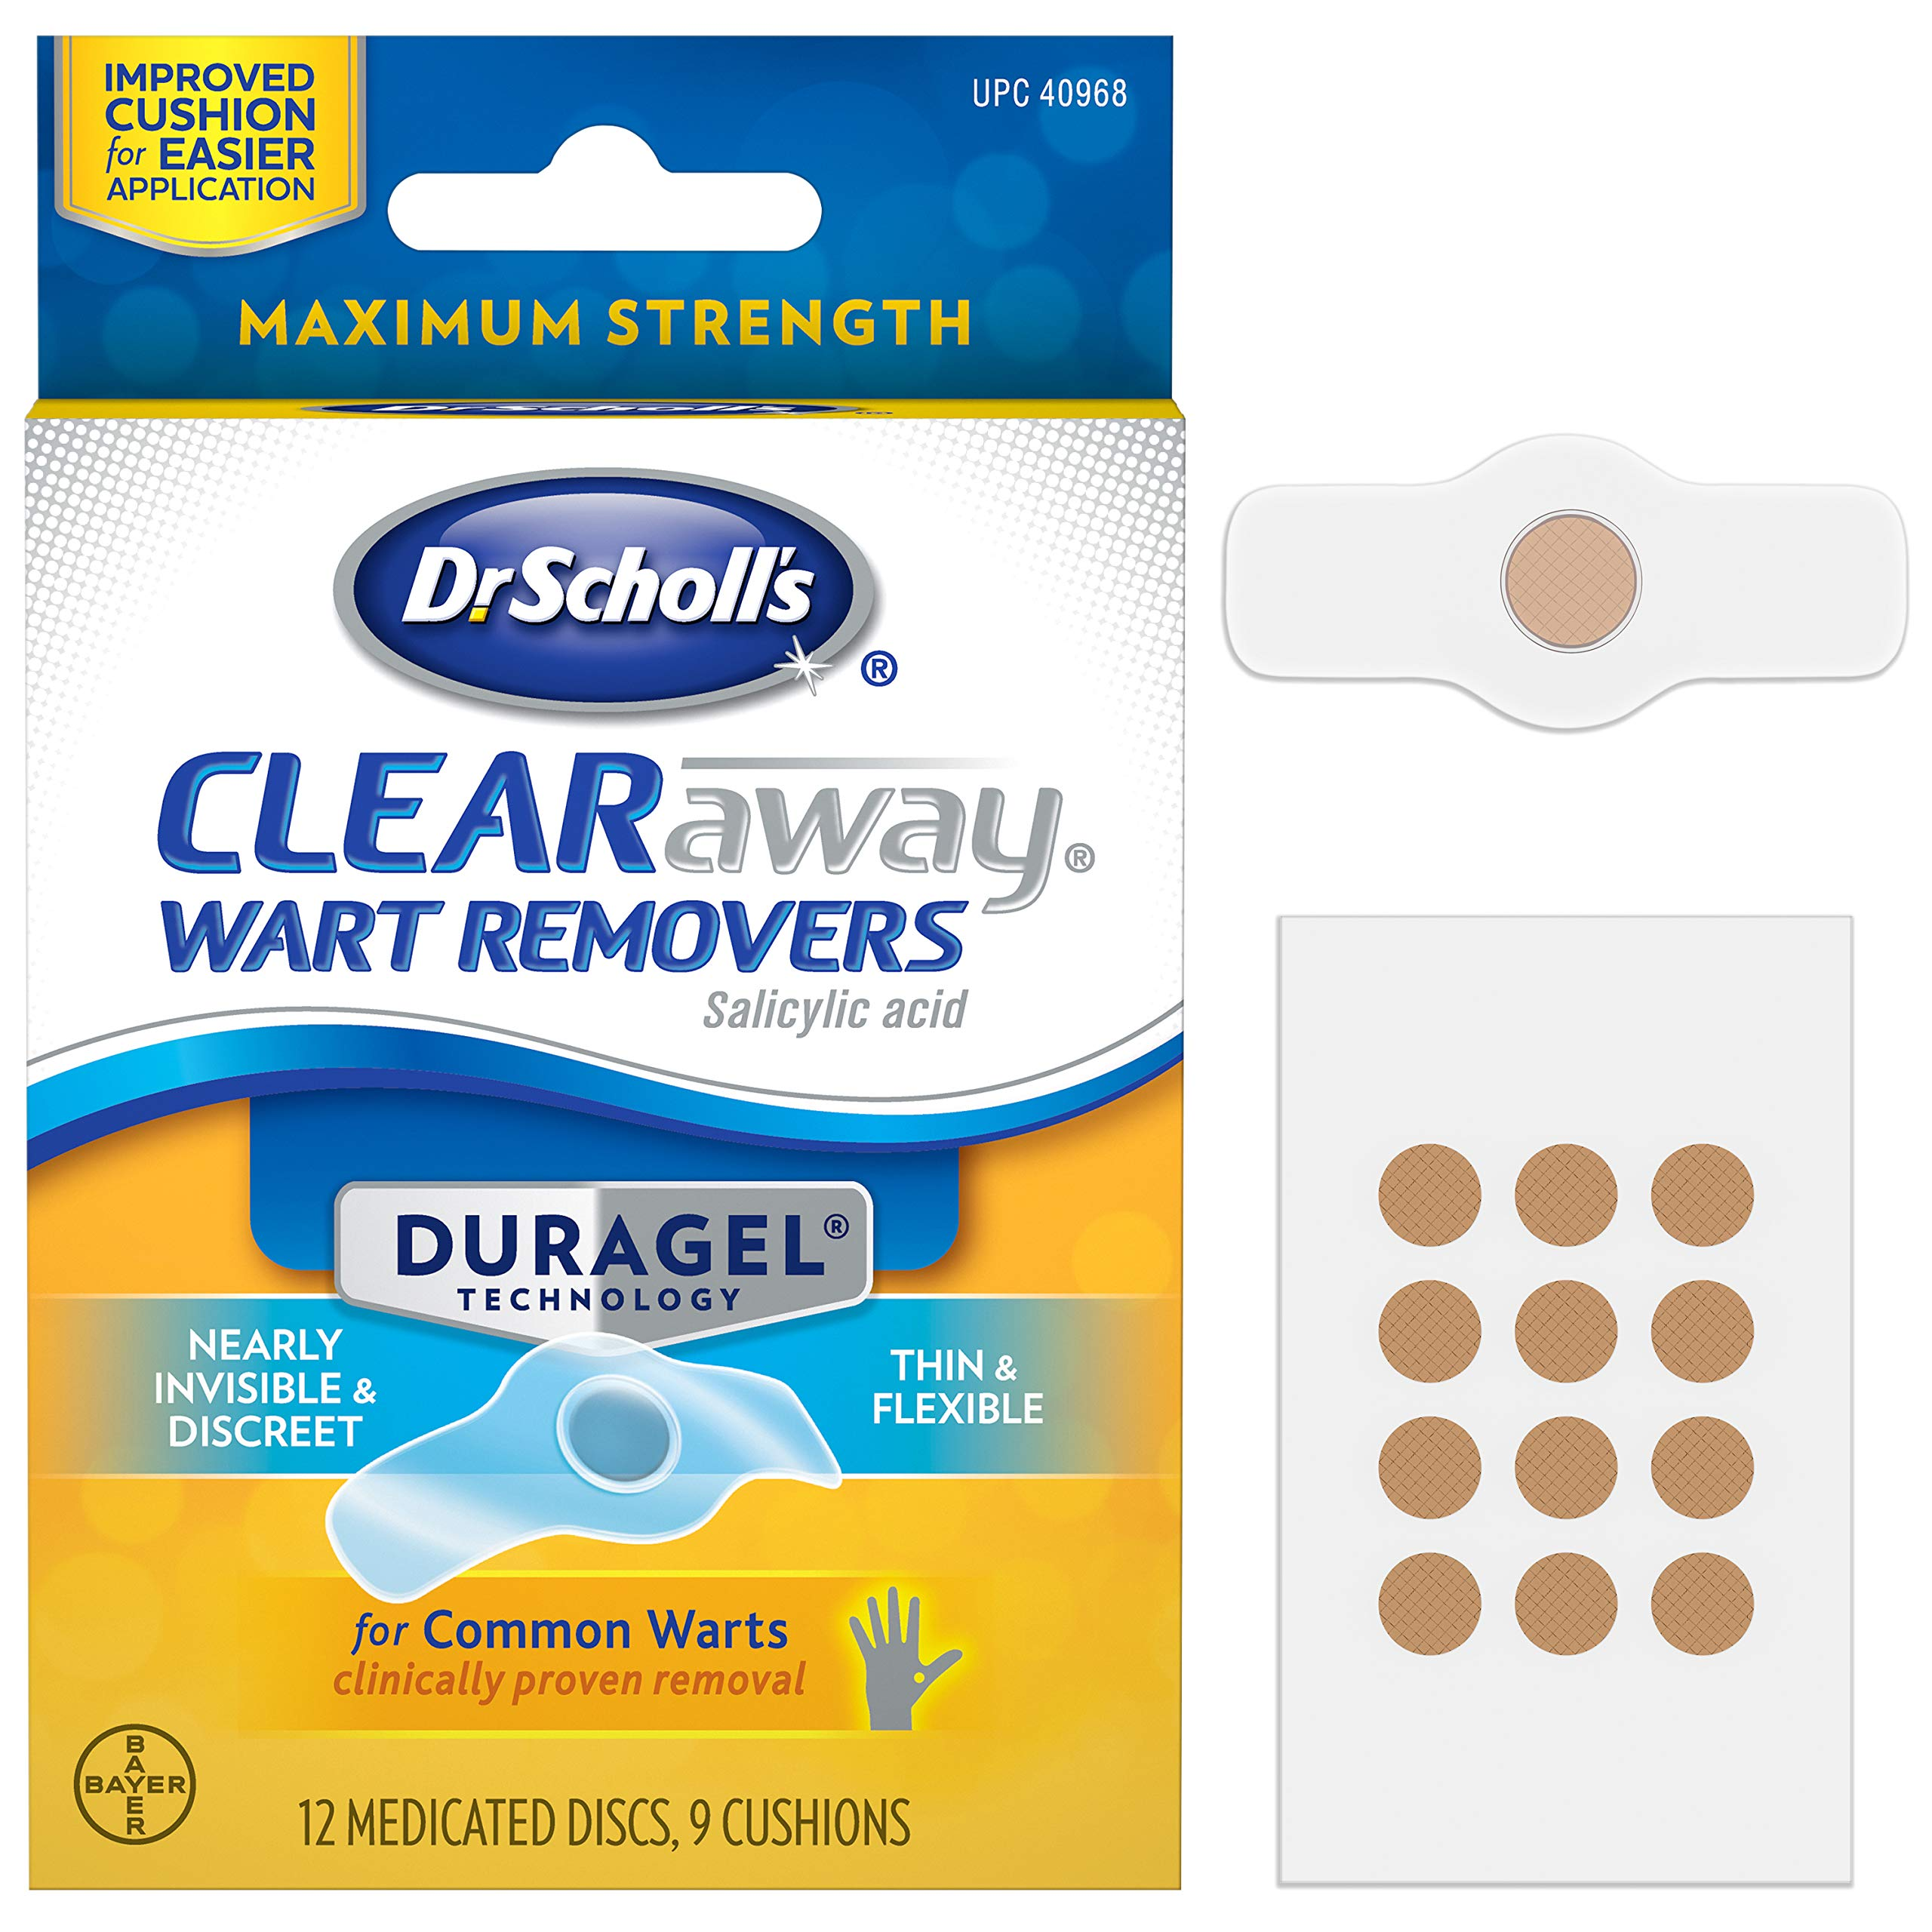 Dr. Scholl's ClearAway Wart Remover with Duragel Technology, 9ct / Clinically Proven Wart Removal of Common Warts with Discreet Thin and Flexible Cushions, Optimal for Fingers and Toes